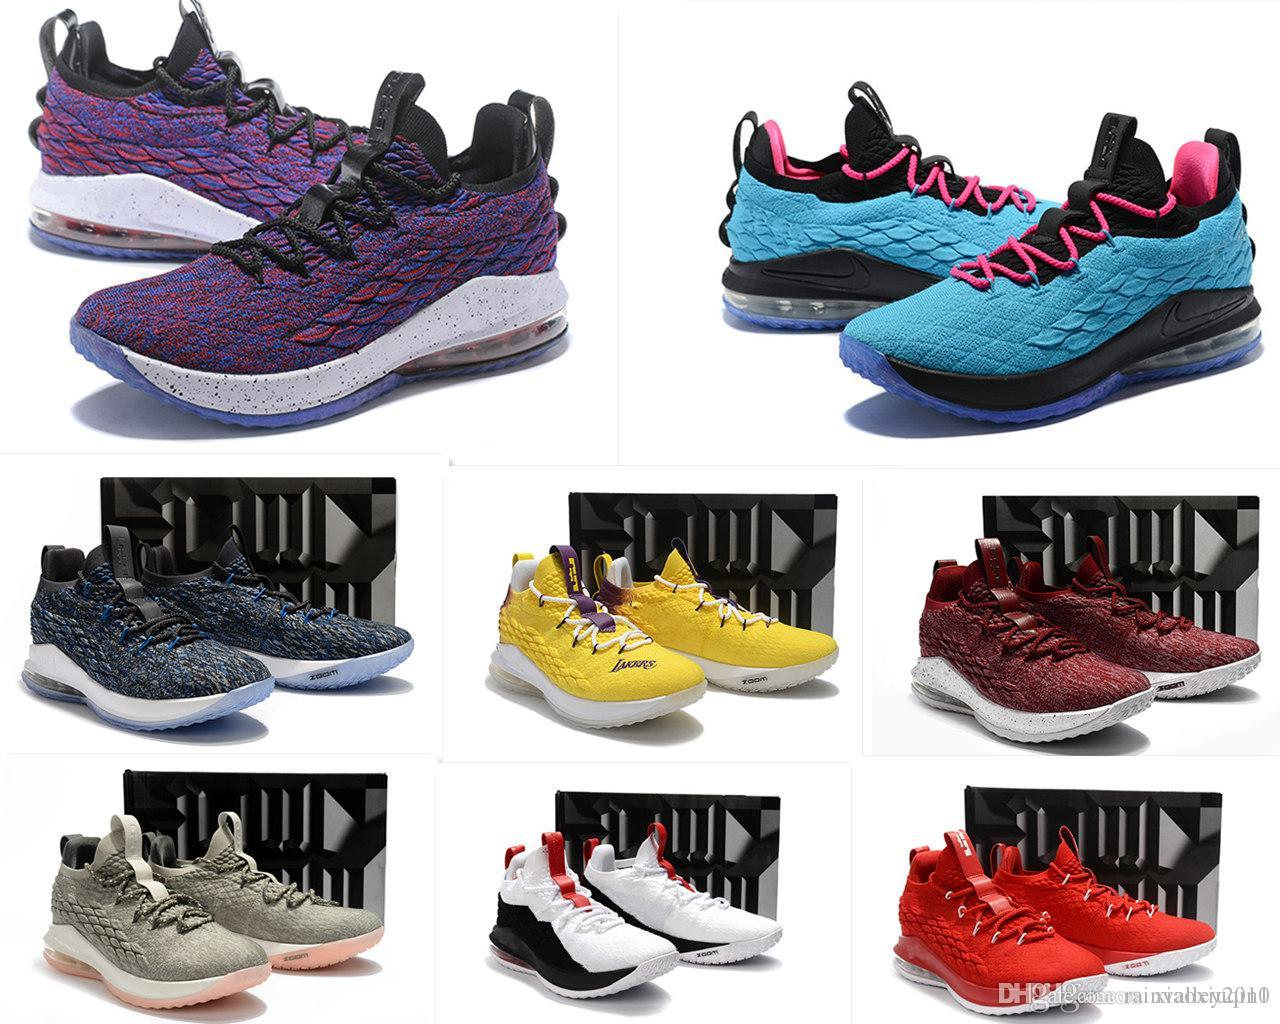 size 40 e85d4 b2041 what the lebron 15 XV low mens basketball shoes for sale MVP Christmas BHM  Oreo youth kids Generation sneakers boots with box shipping